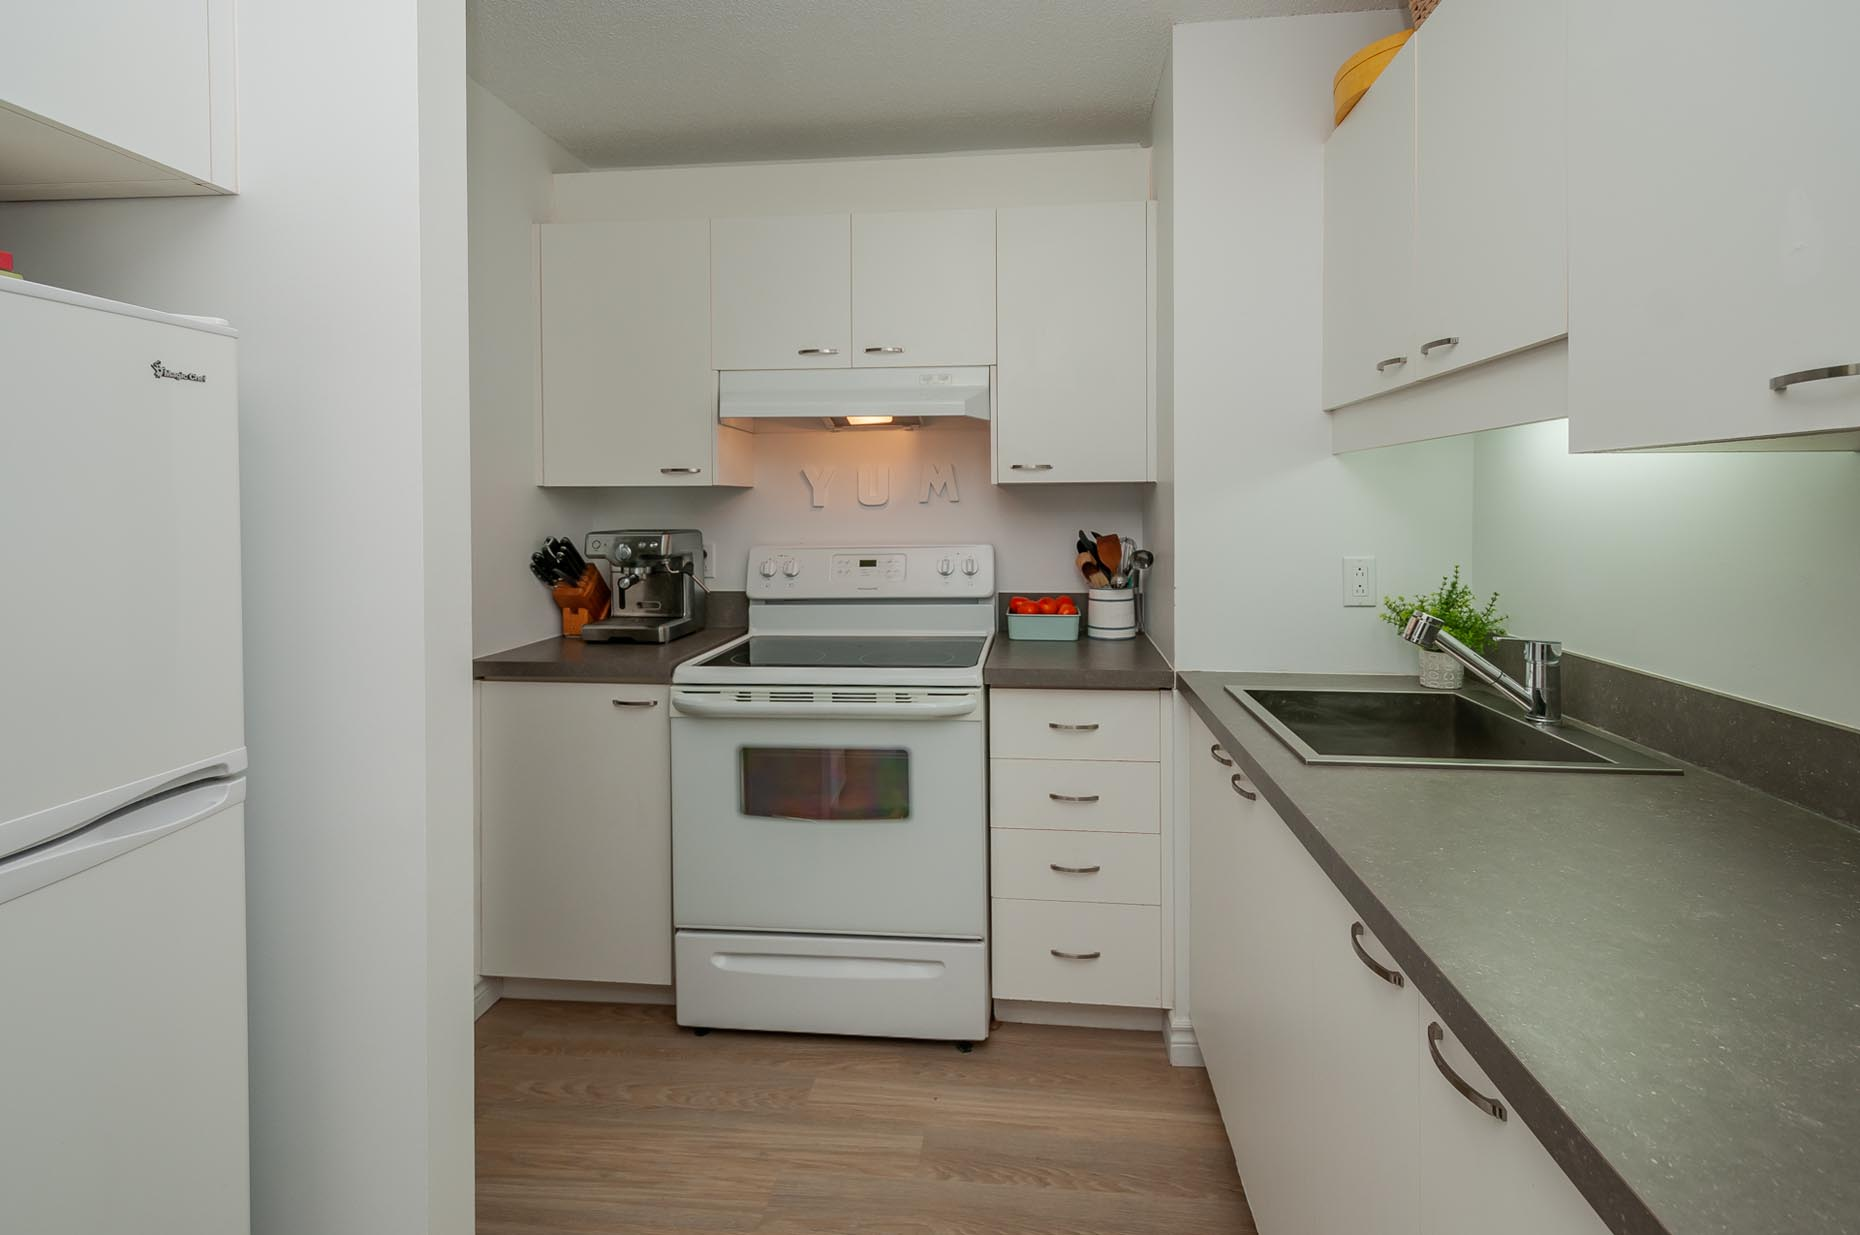 Classic Kitchen in Complexe Laudance